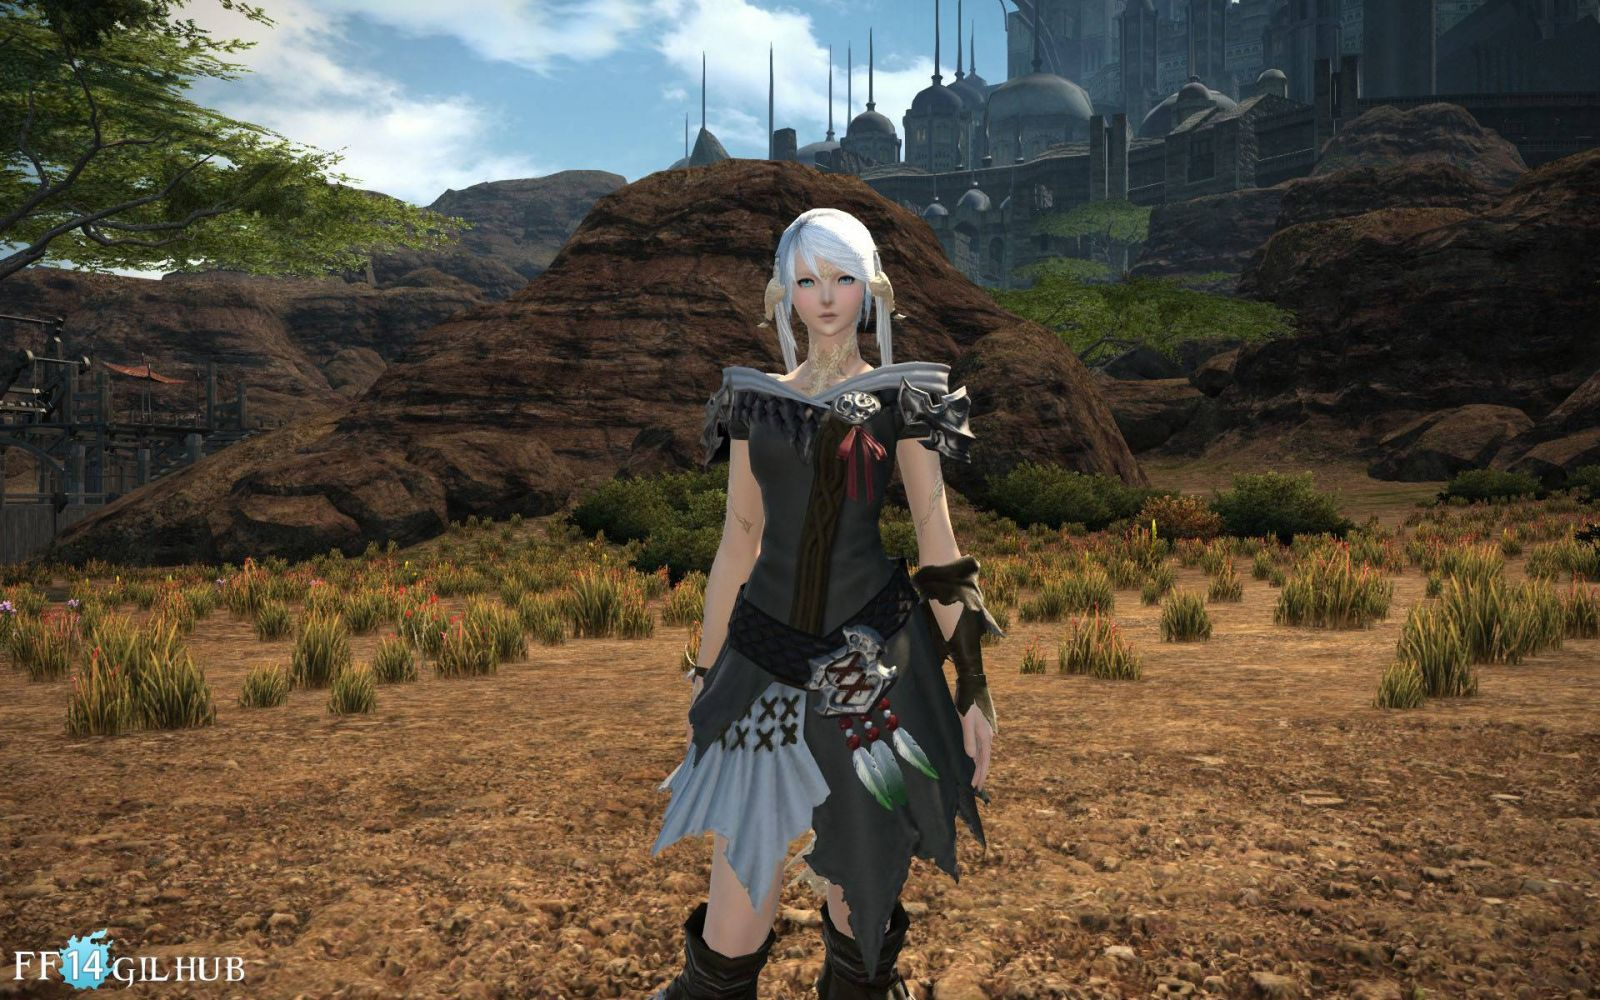 FFXIV Heavenswar - What City or Class makes the most sense for the